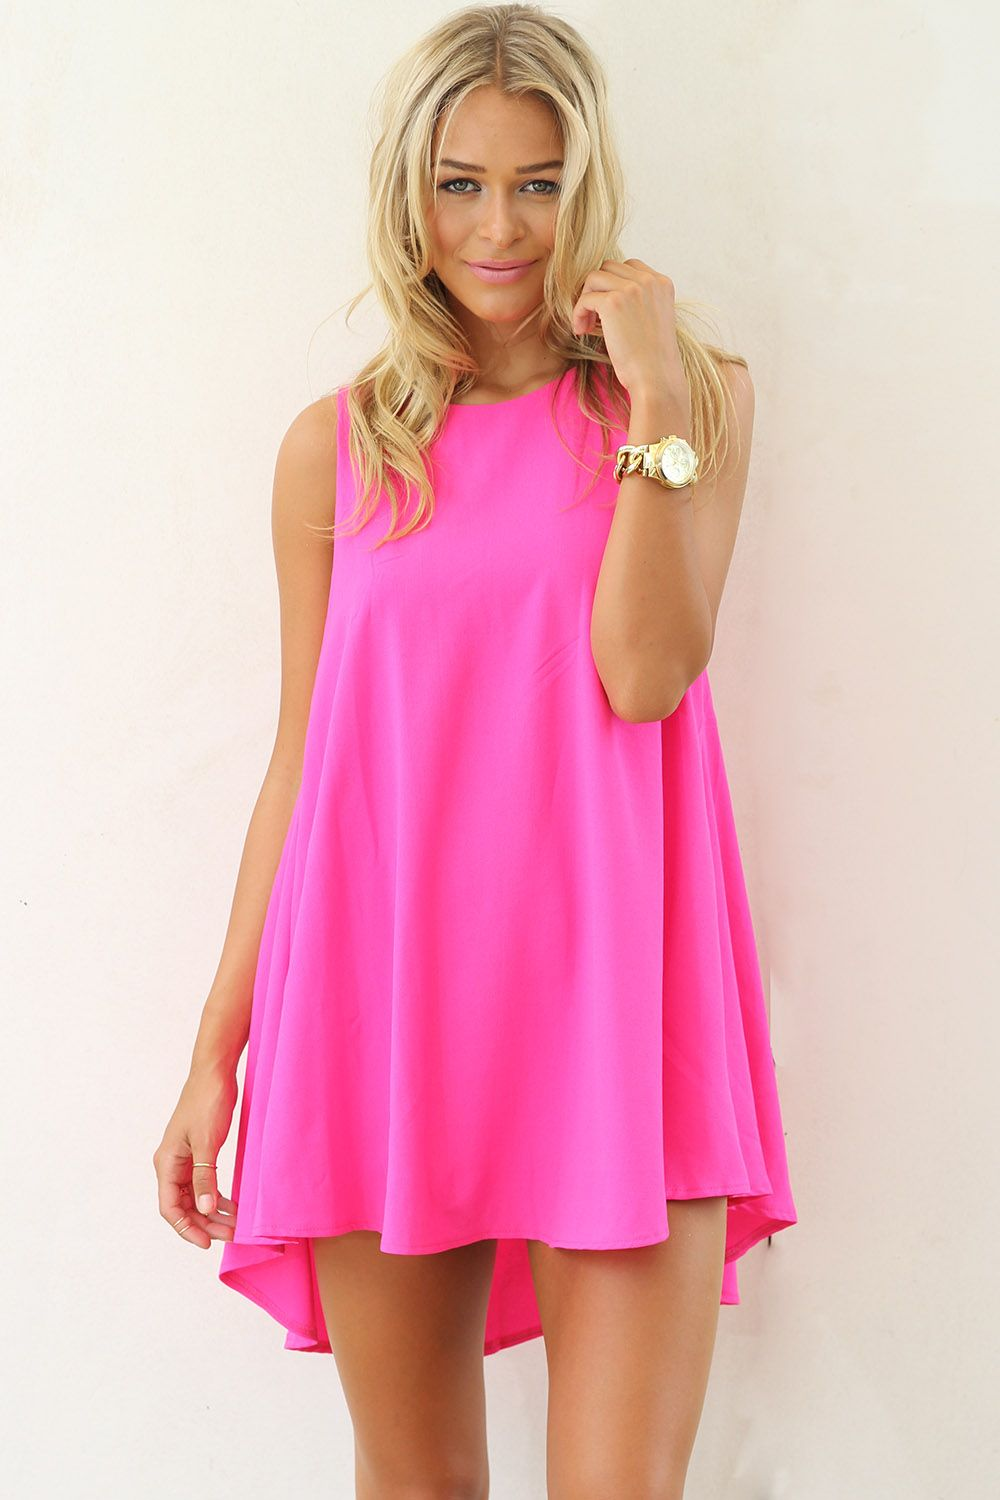 Pink silk lotus mini mullet dress | Hot pink dresses, Summer and ...